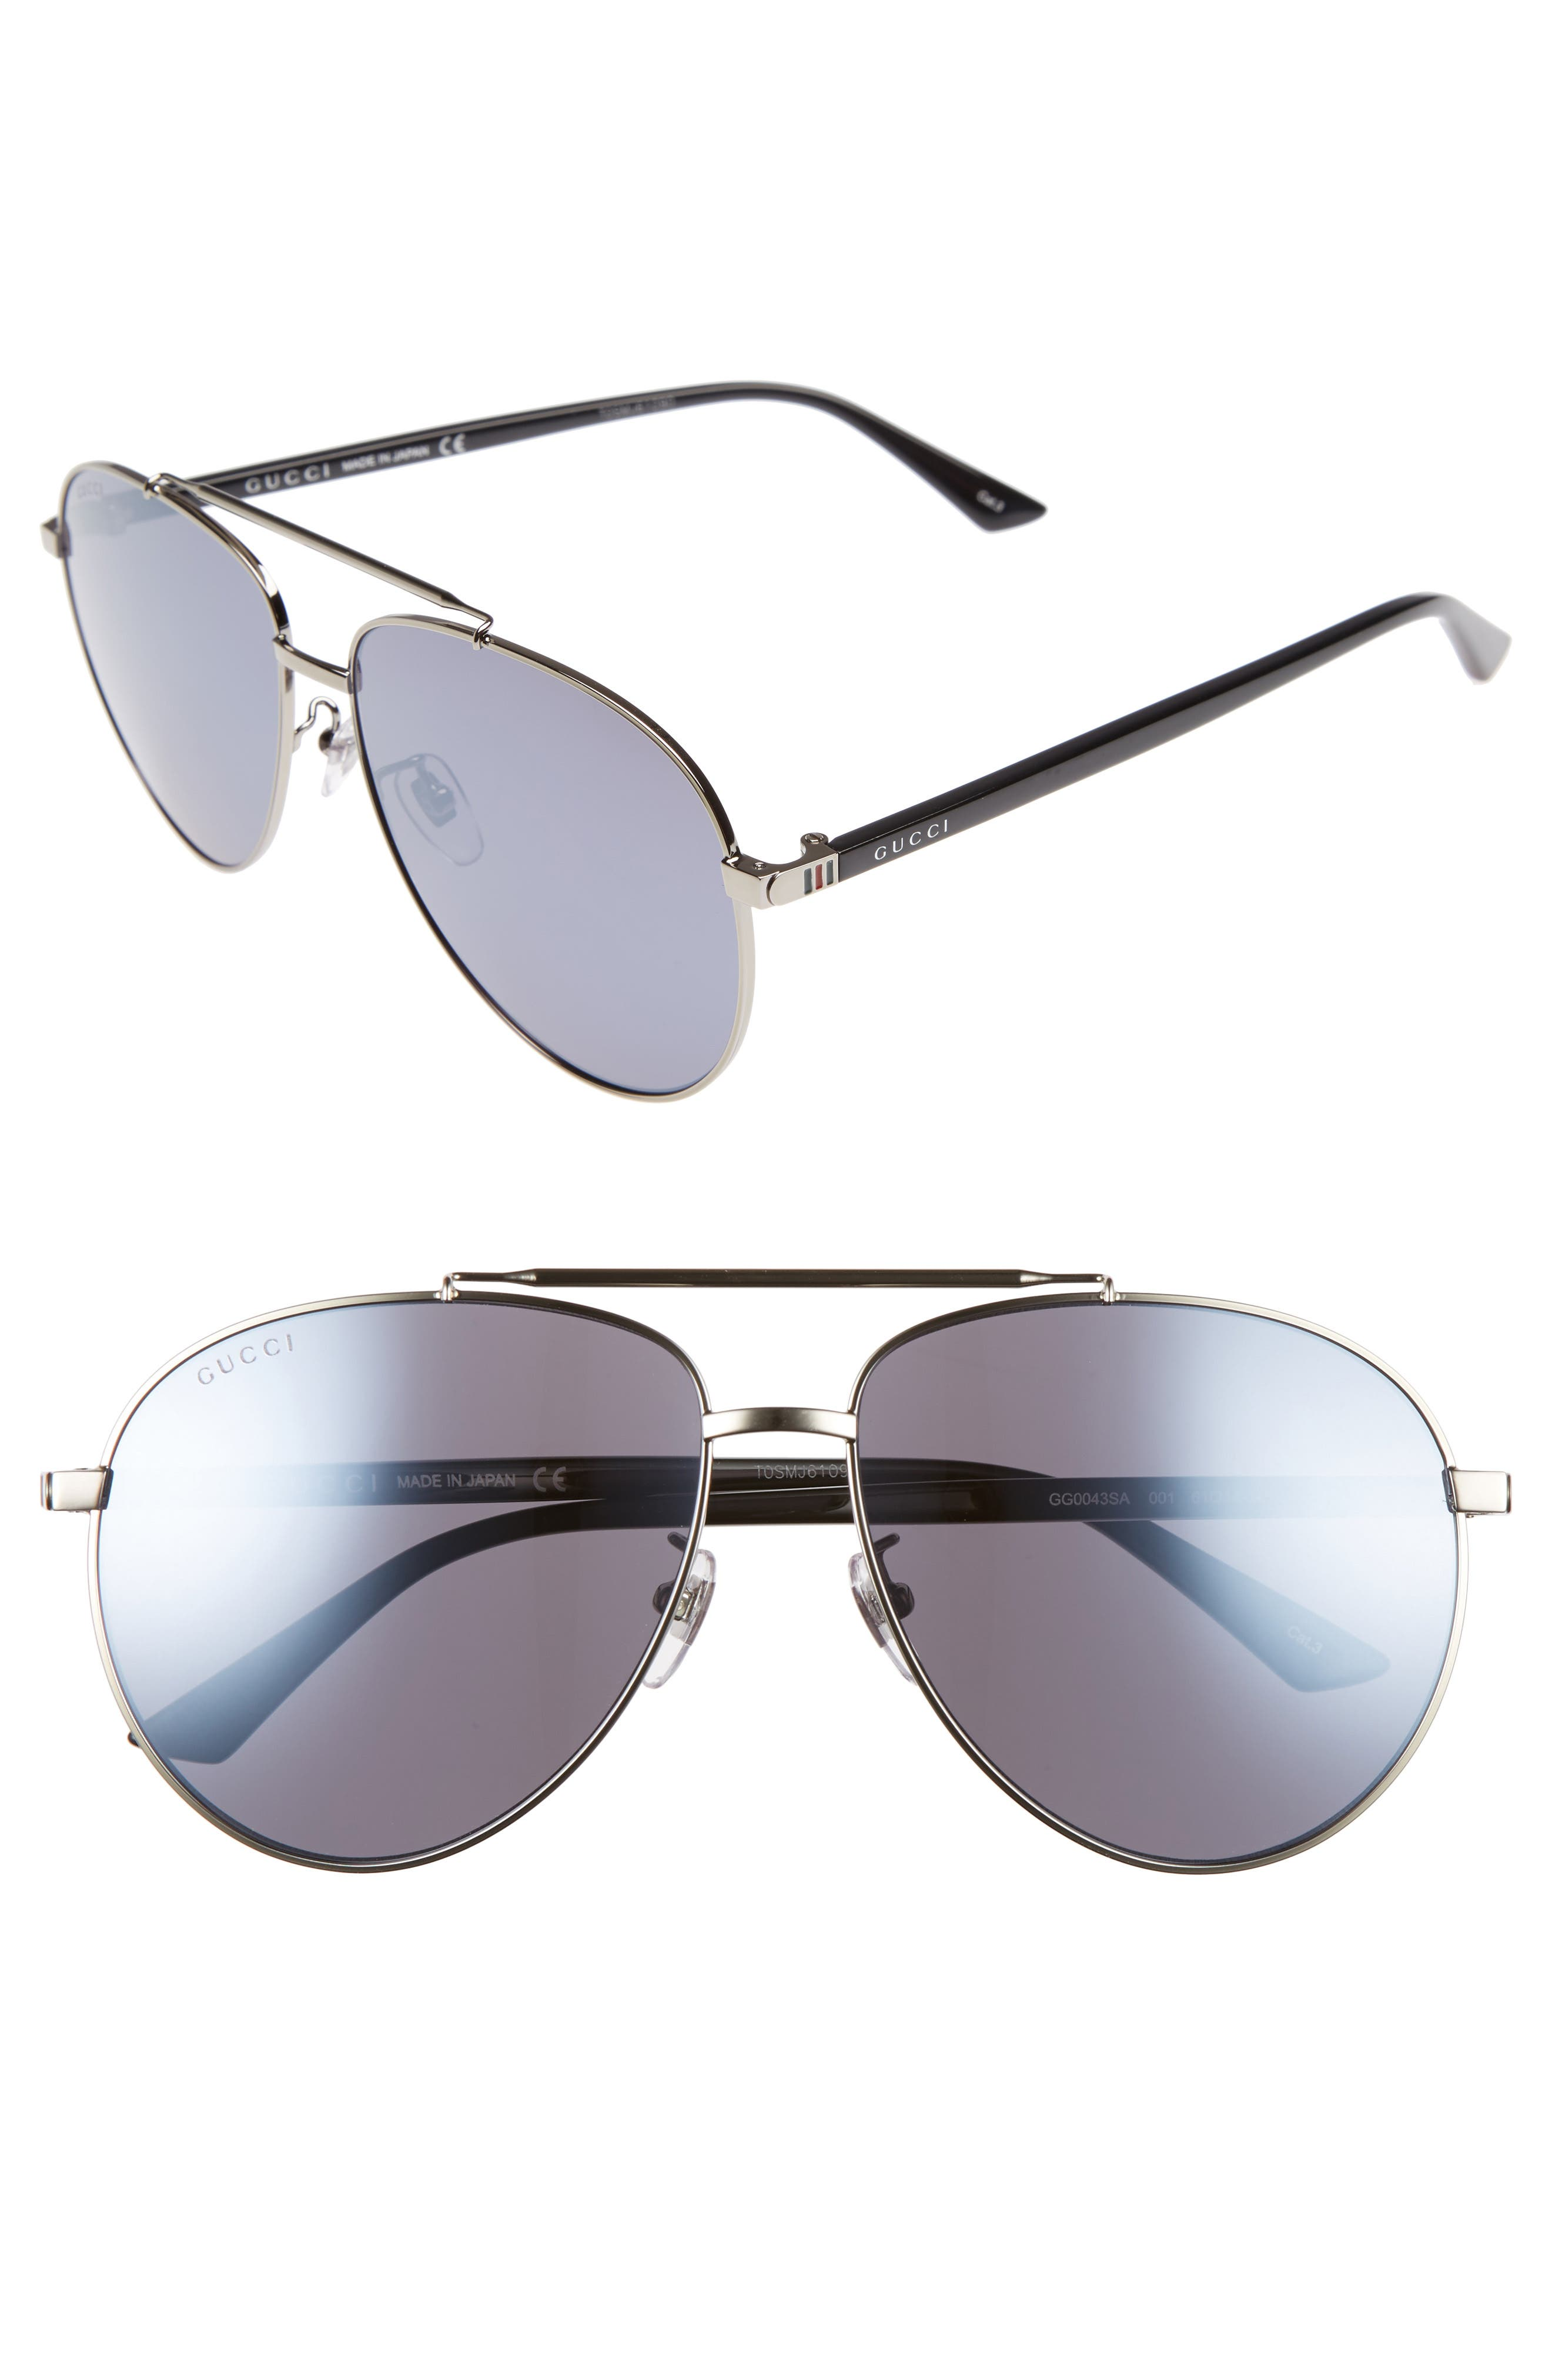 Gucci 61Mm Aviator Sunglasses - Mirror Gunmetal/ Ruthenium